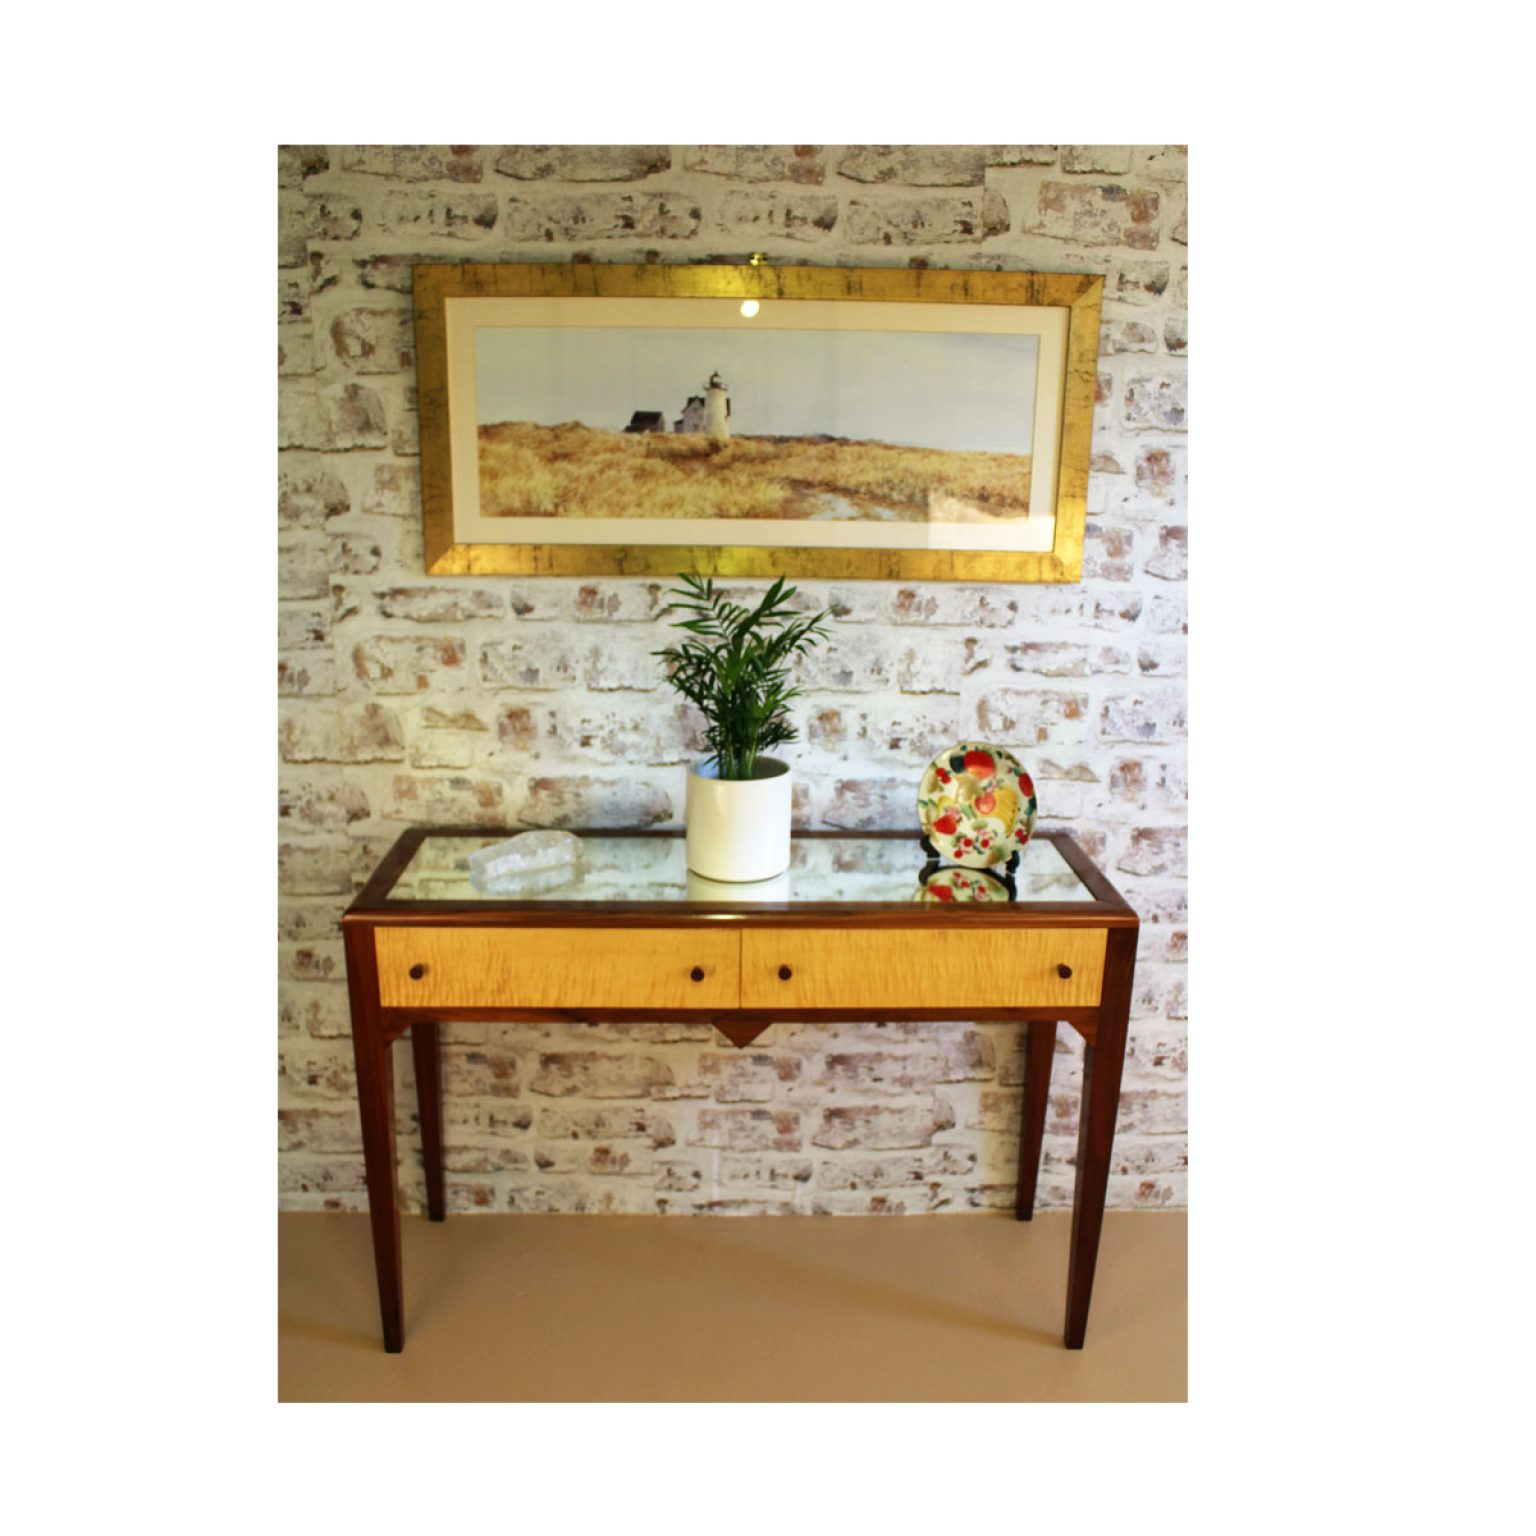 Bespoke Art Deco Hall Table Handcrafted in Suffolk